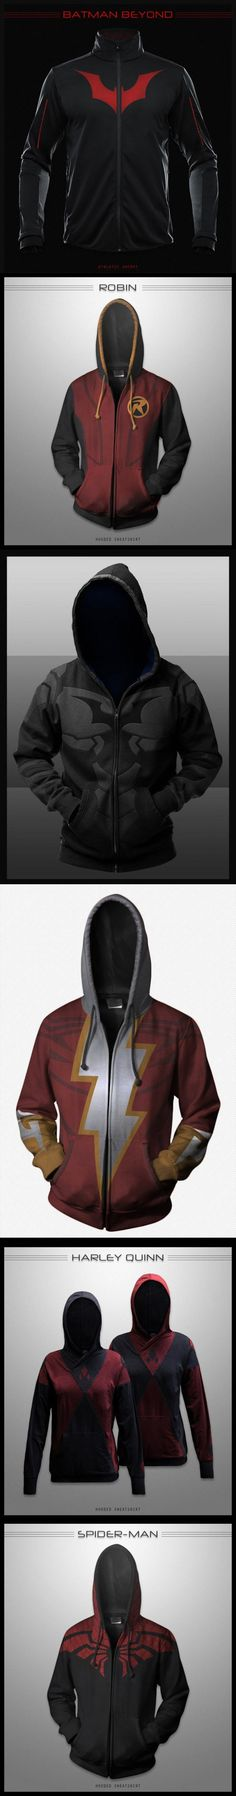 Amazing Concept Hoodies - Batman Beyond, Spiderman, Robin, Flash. I want the batman beyond one Moda Geek, Estilo Geek, Mode Steampunk, Style Masculin, Look Man, Cool Hoodies, Funny Hoodies, Sweatshirts, Geek Fashion